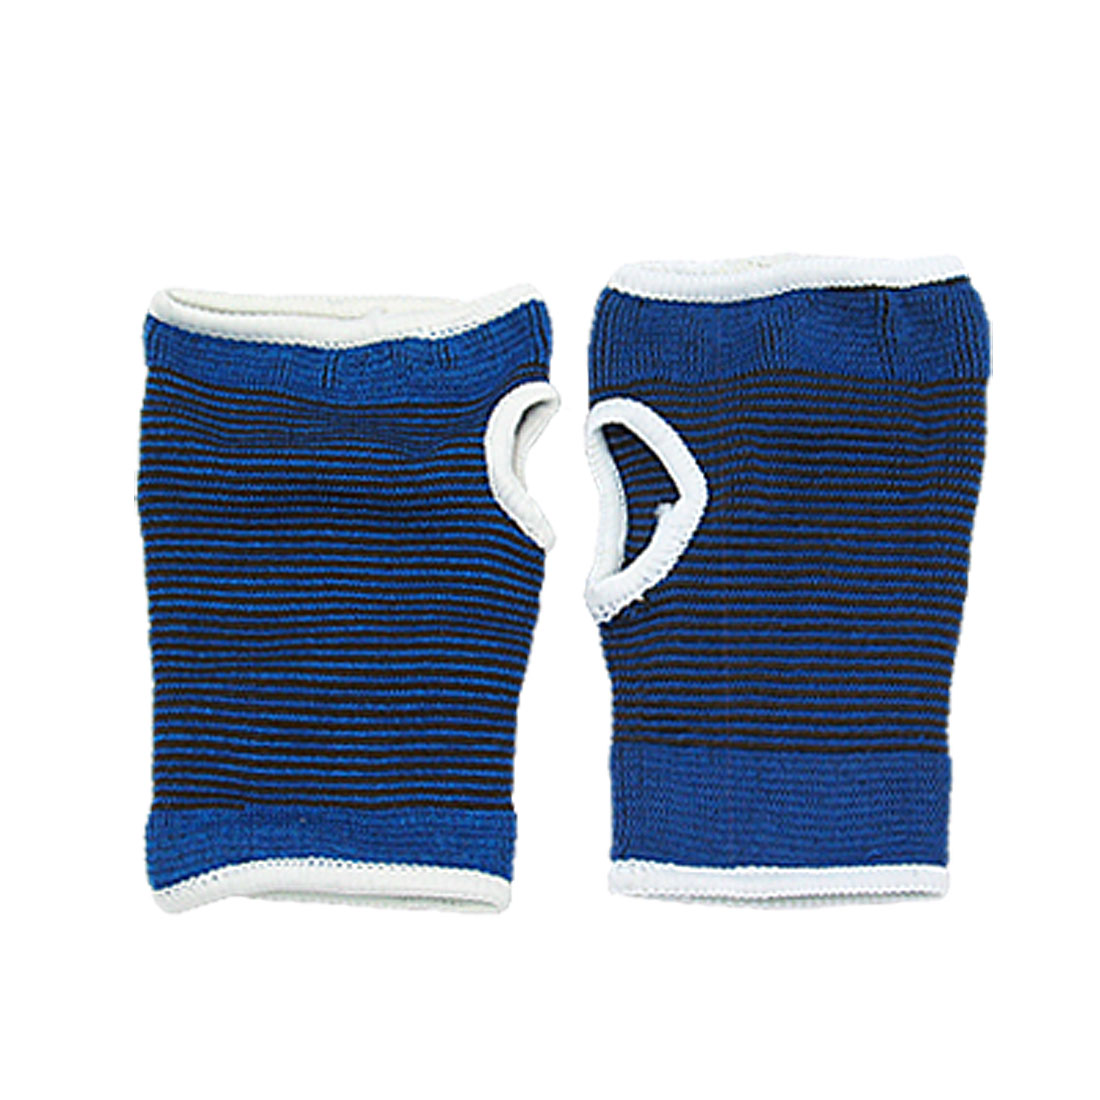 2 PCS Palm Support Sports Hand Elastic Brace Protector Blue